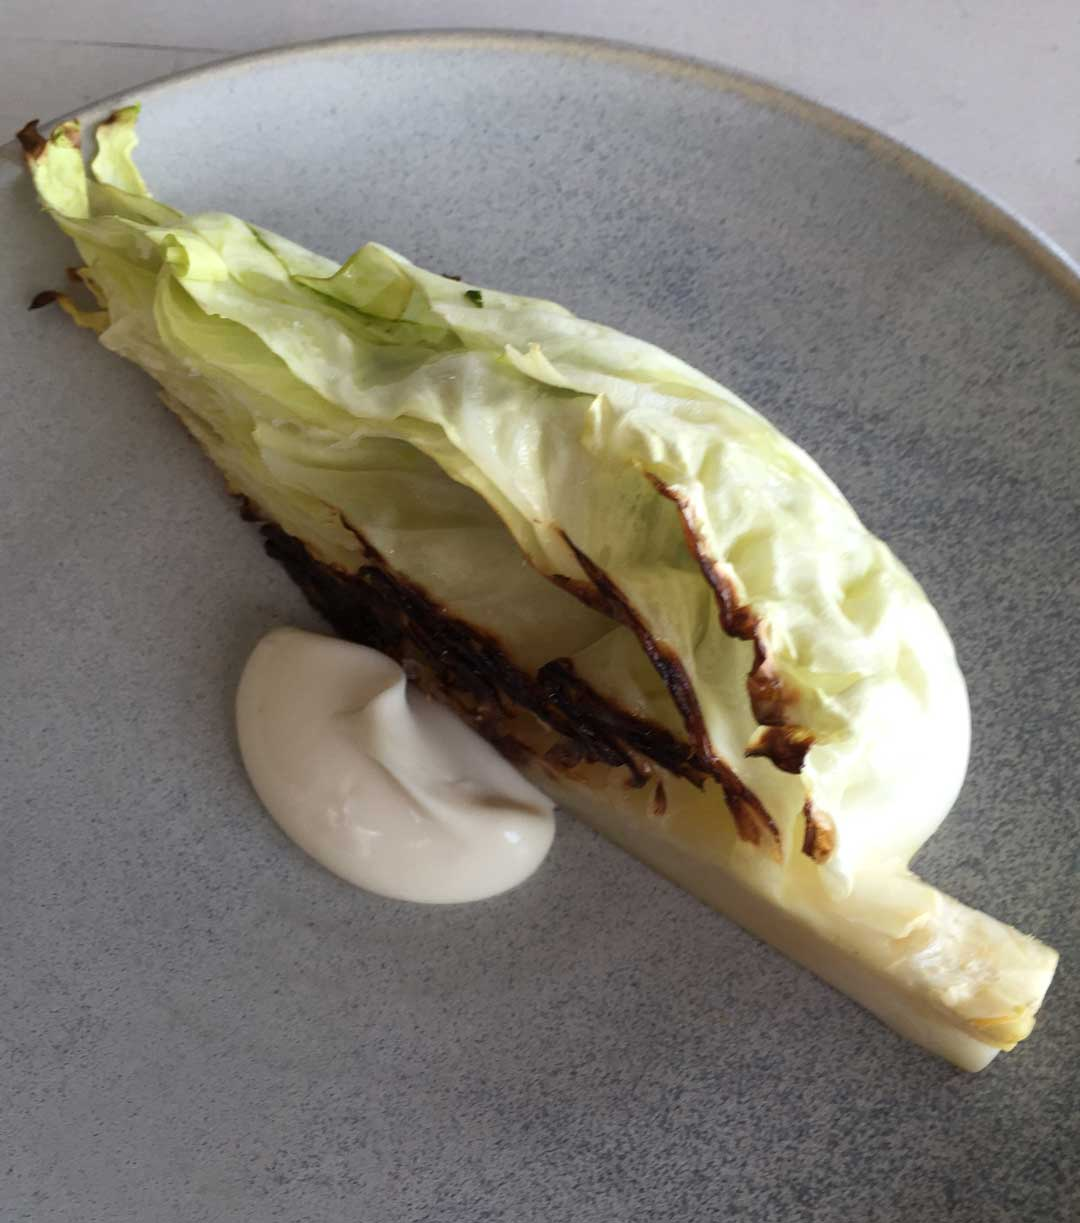 Kadeau Bornholm dish: grilled pointed cabbage stuffed with oysters and parsley